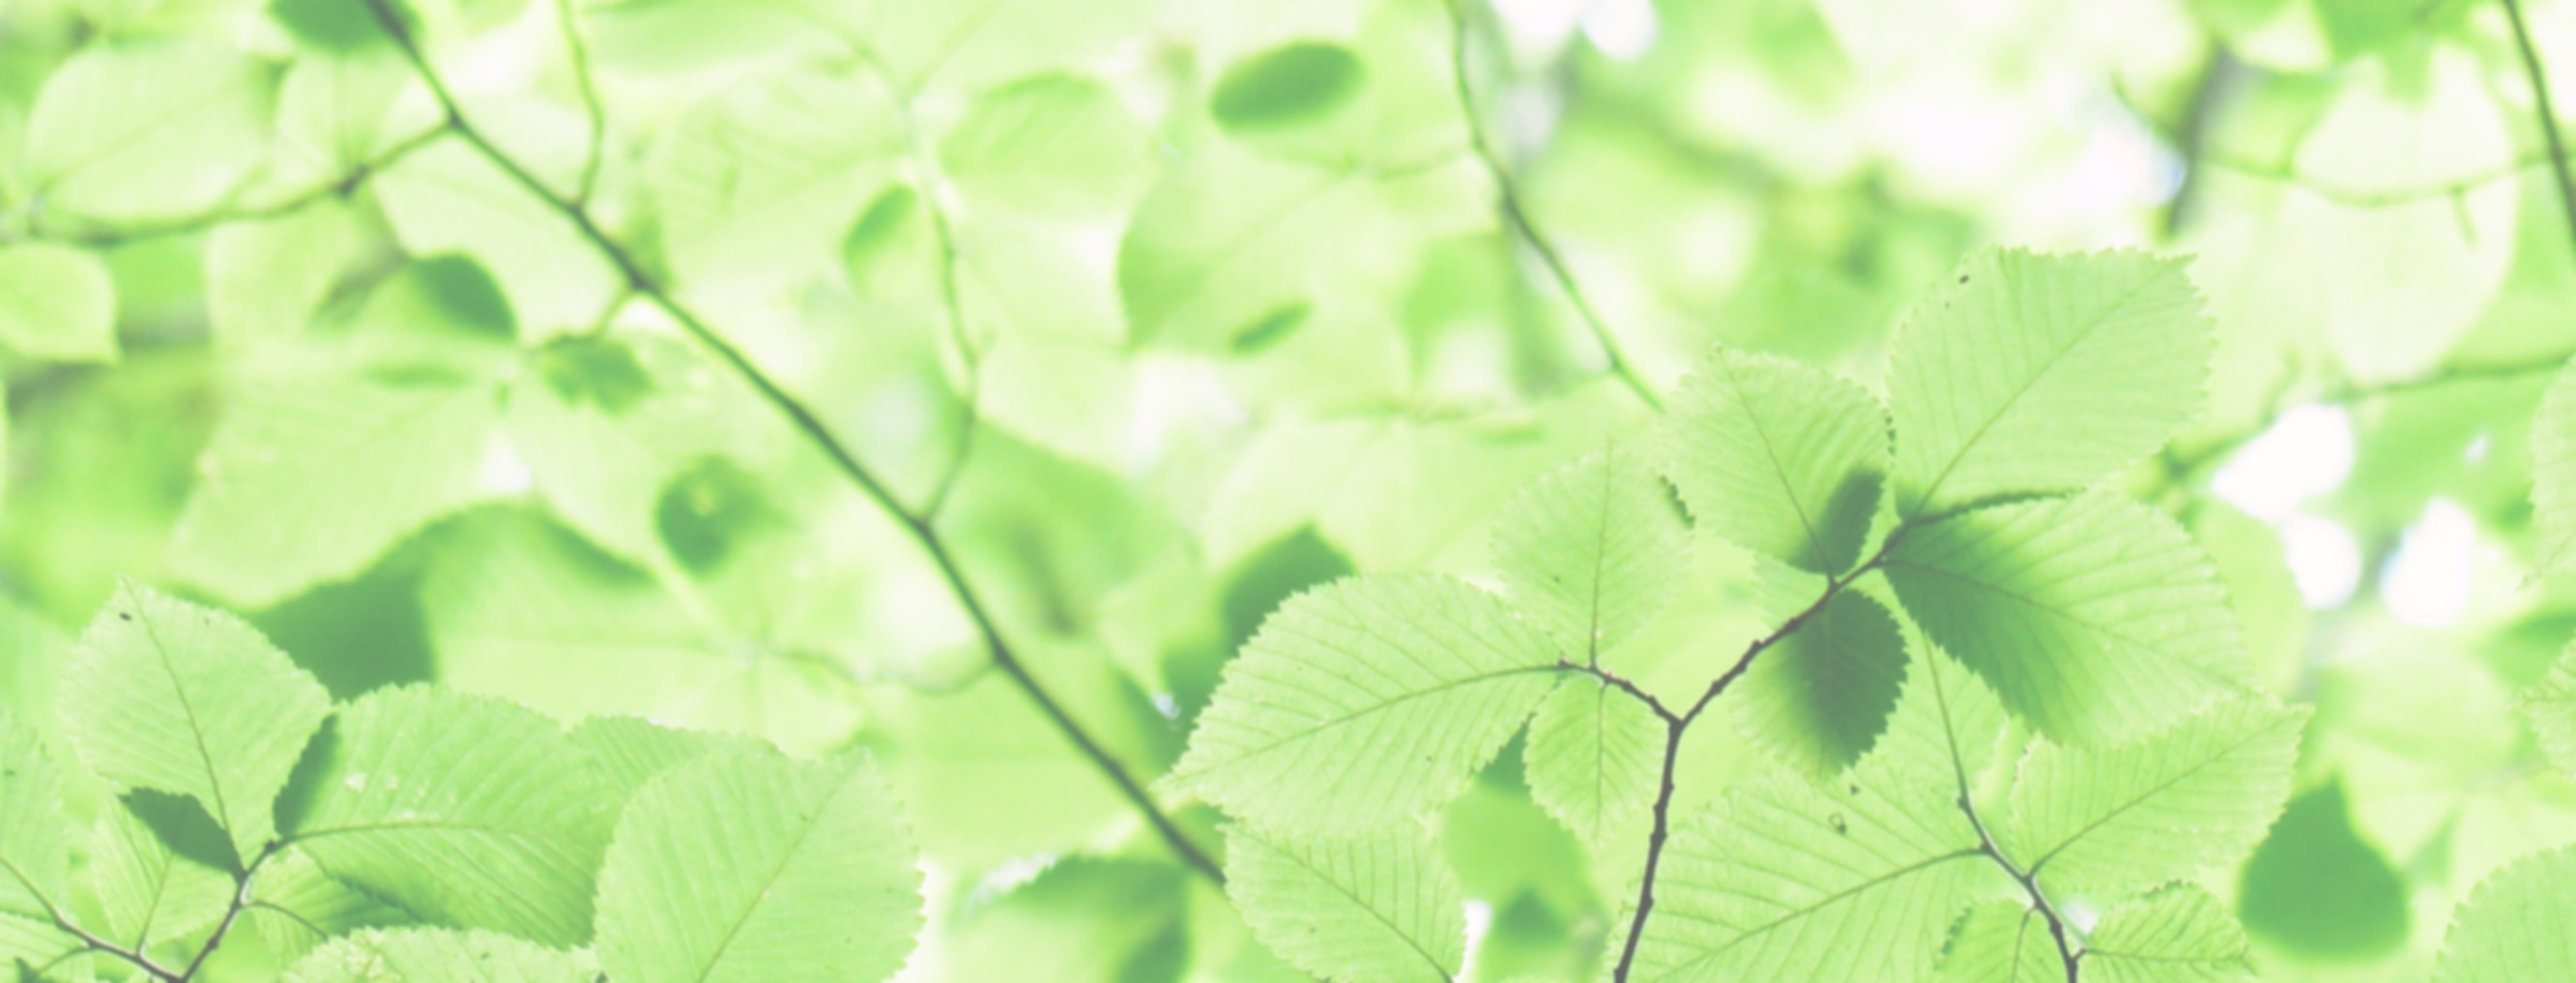 Canva - Close Up Photo of Green Leaves_e